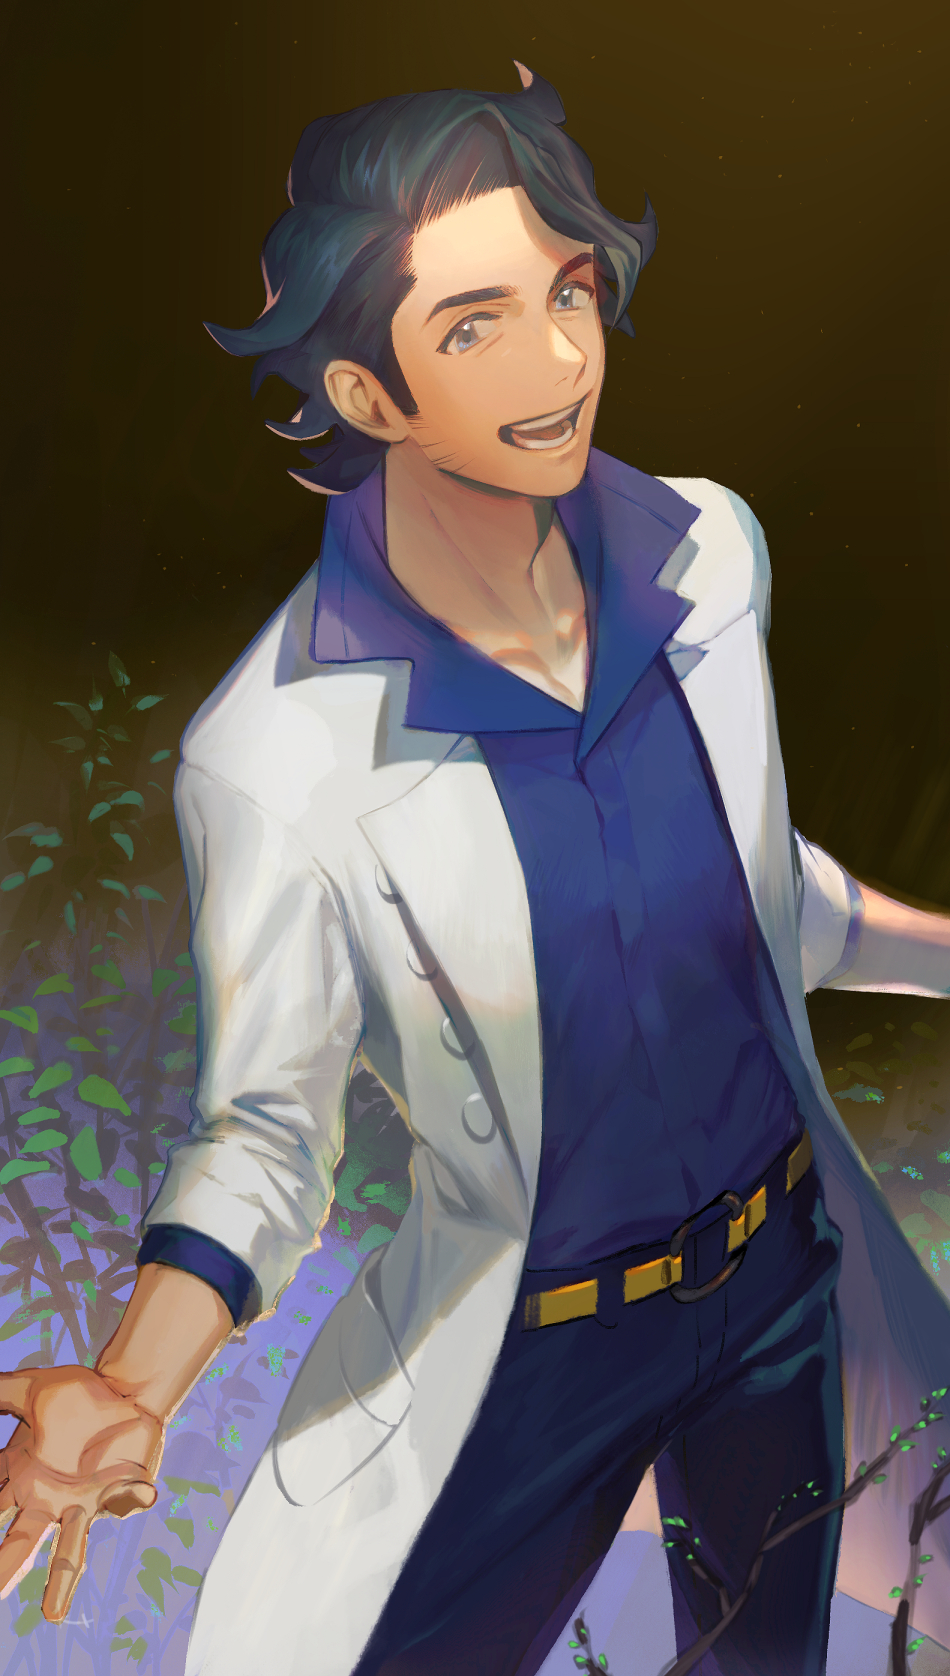 1boy augustine_sycamore belt black_hair black_pants blue_shirt branch coat collared_shirt highres kmtk leaf male_focus medium_hair open_clothes open_coat open_mouth pants pokemon pokemon_(game) pokemon_xy shirt solo symbol_commentary teeth white_coat